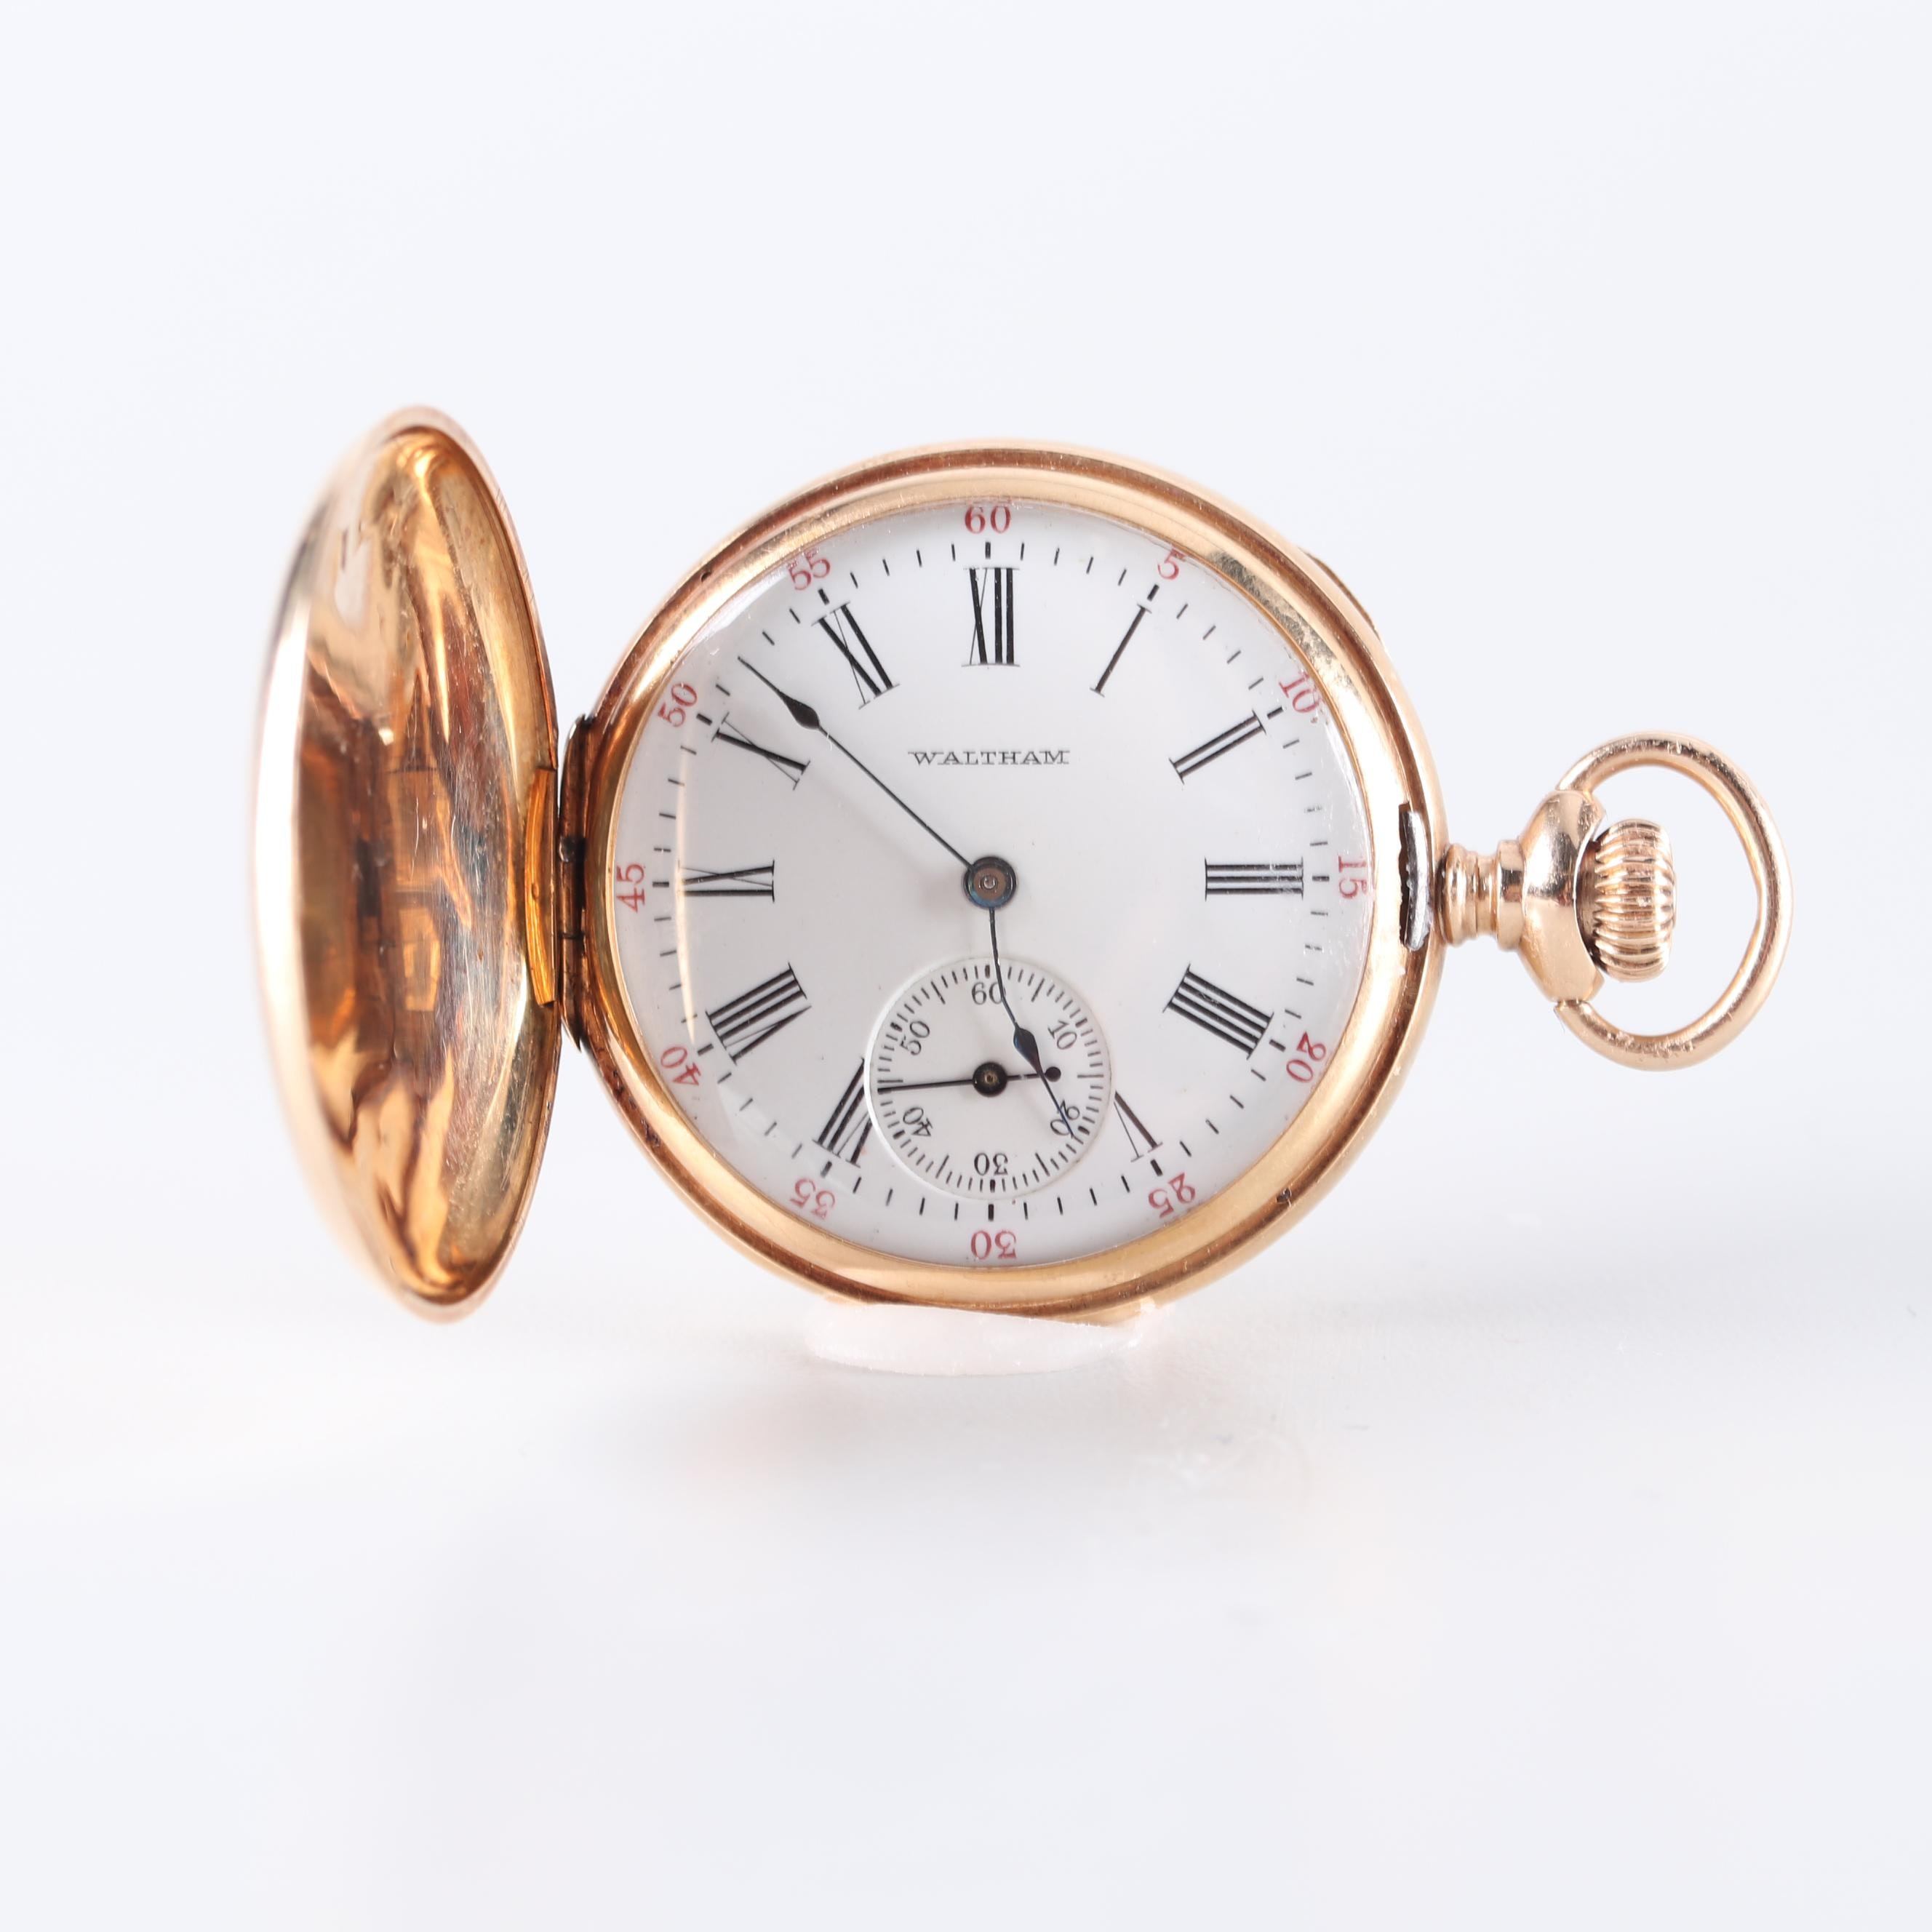 Waltham 14K Yellow Gold and Diamond Accented Pocket Watch, 1909